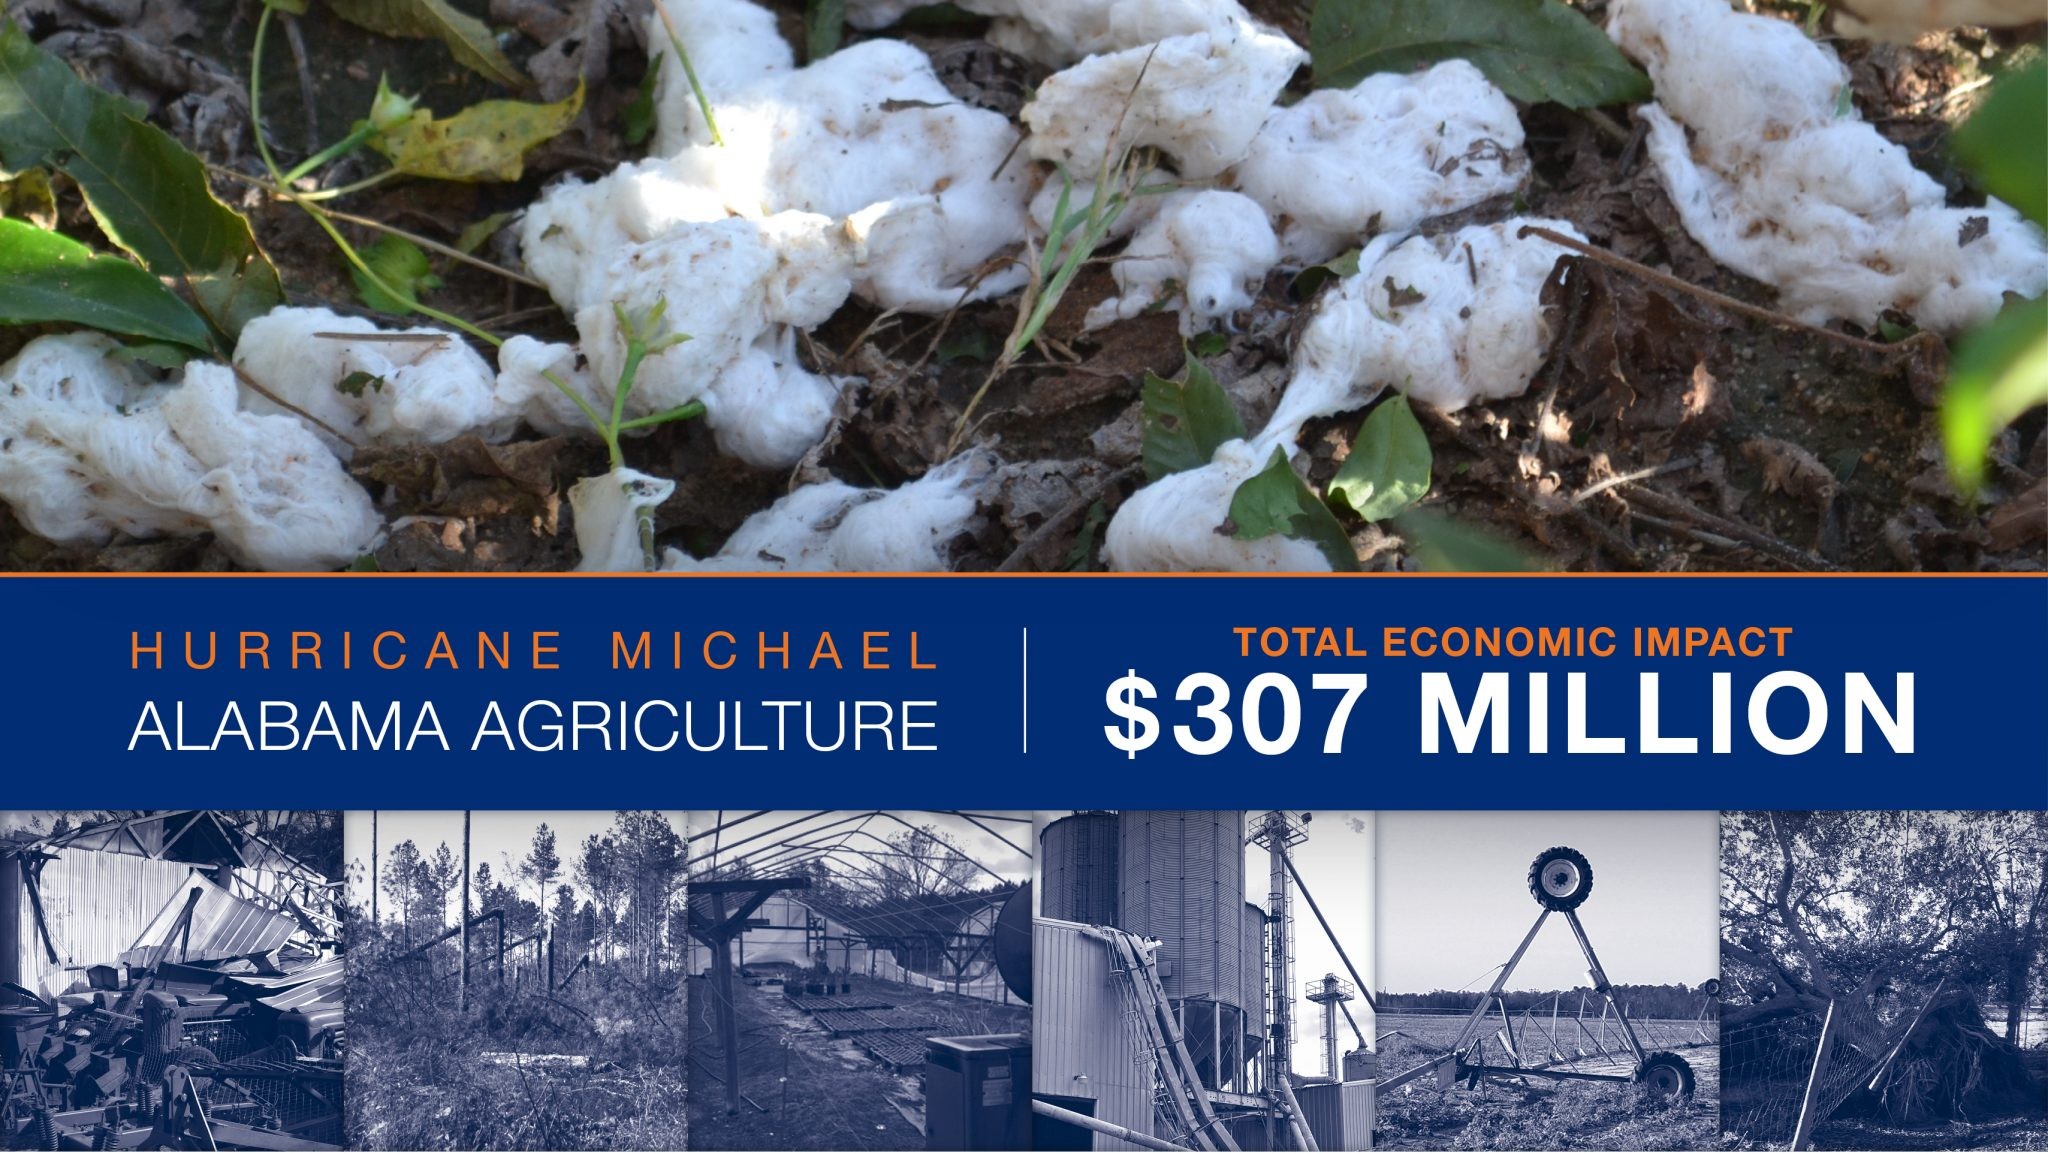 Total economic impact from hurricane michael